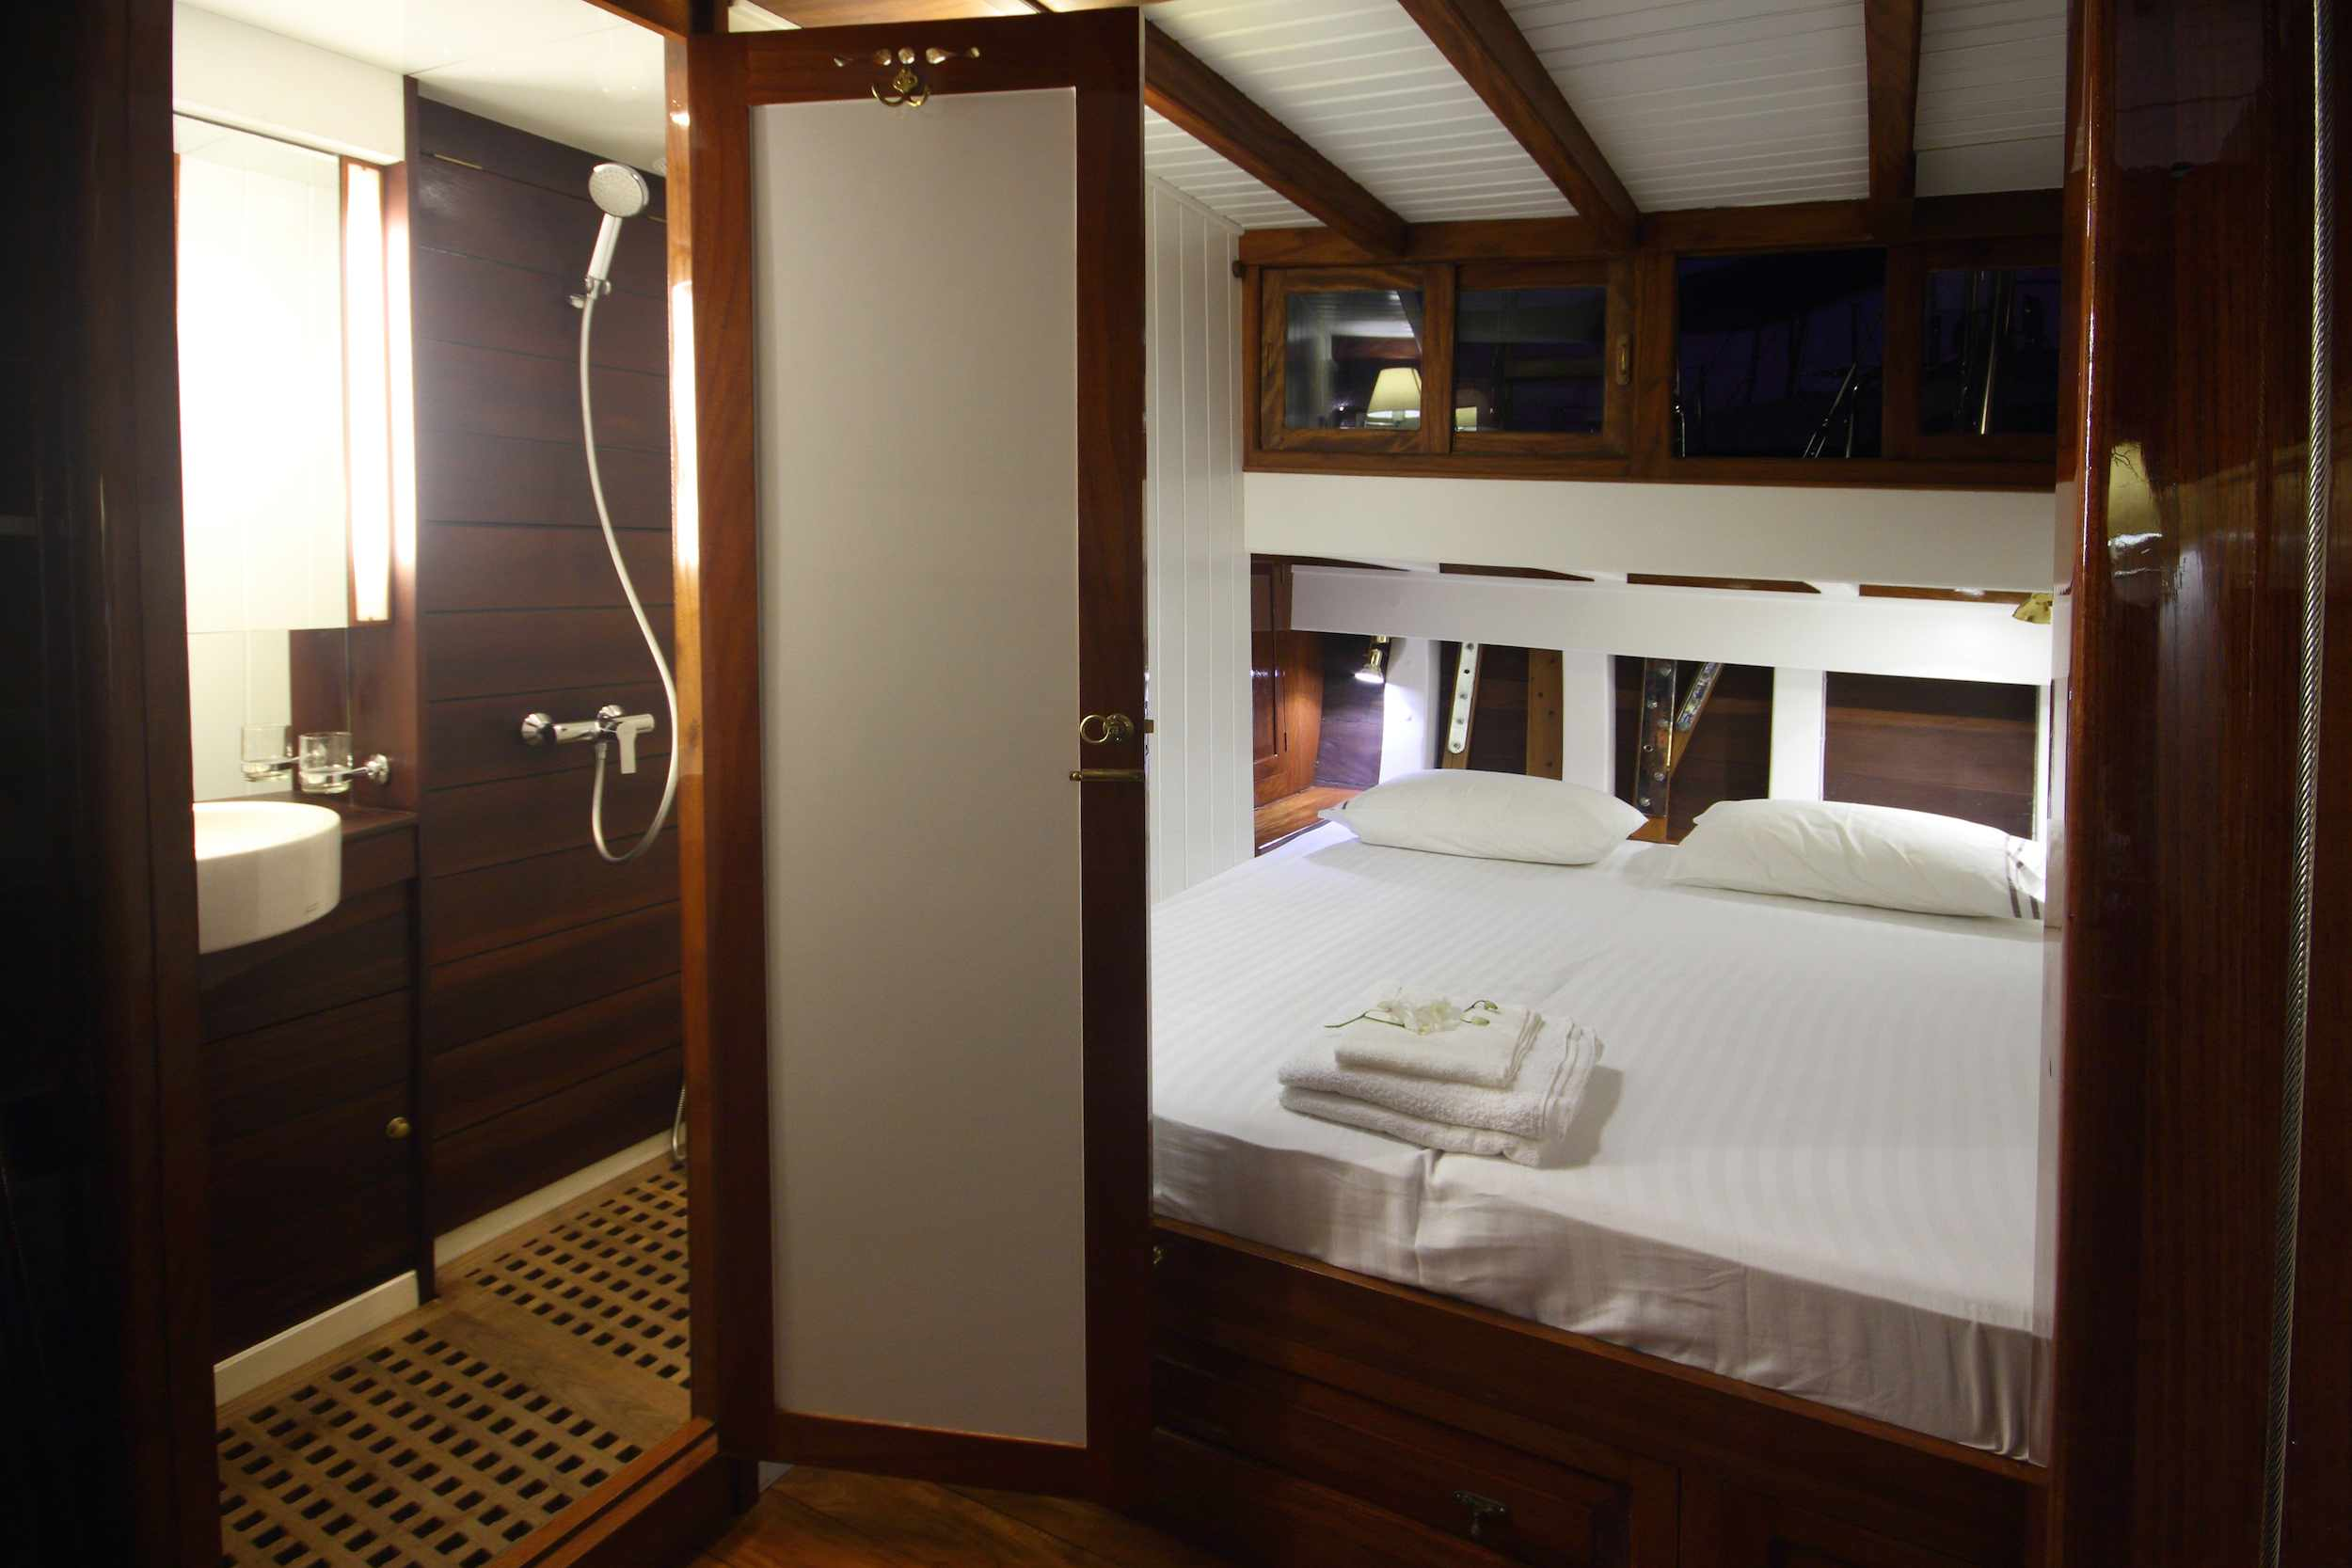 All cabins on Aventure come with ensuite bathrooms